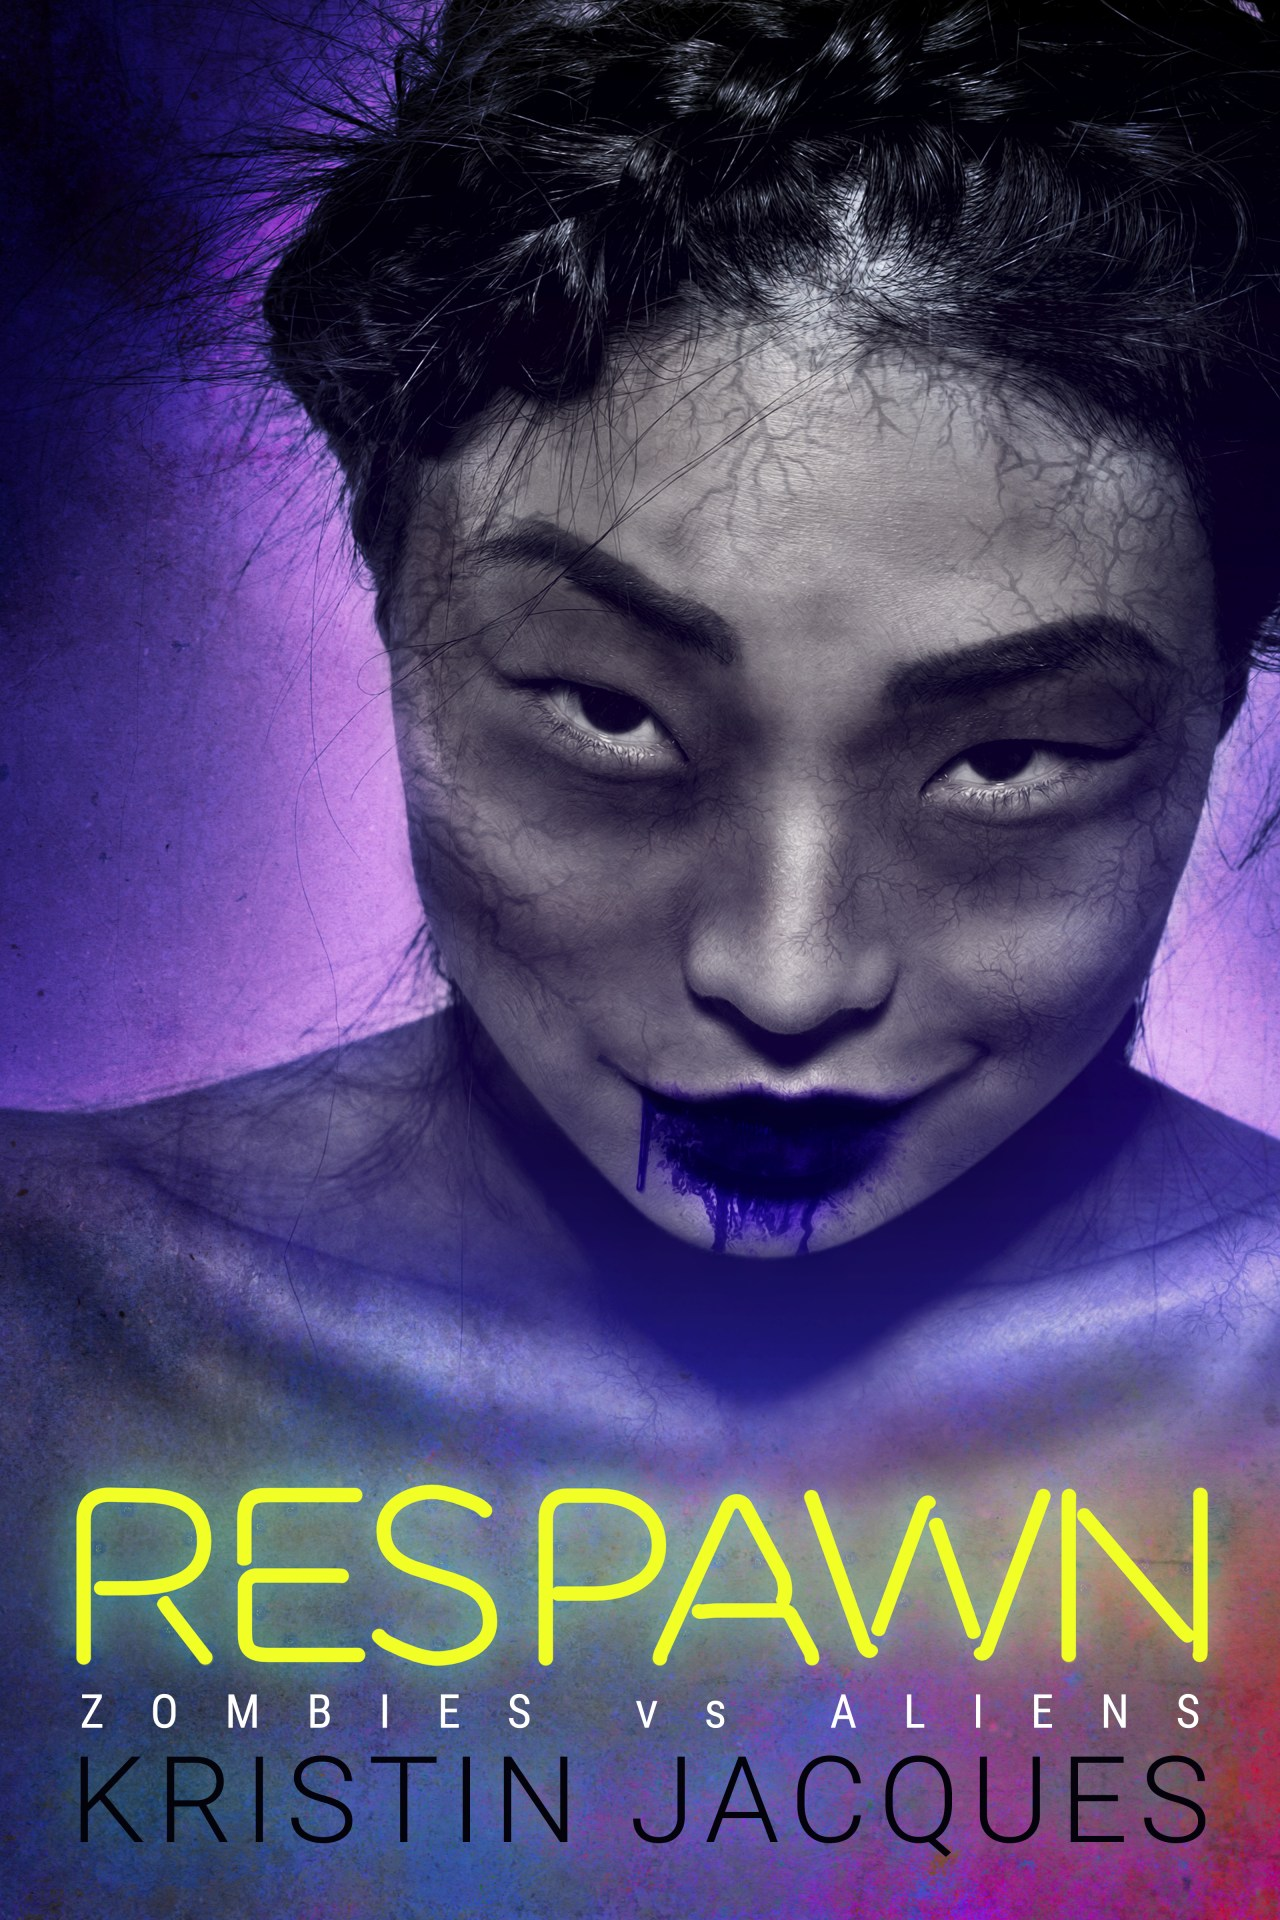 RESPAWN by Kristin Jacques